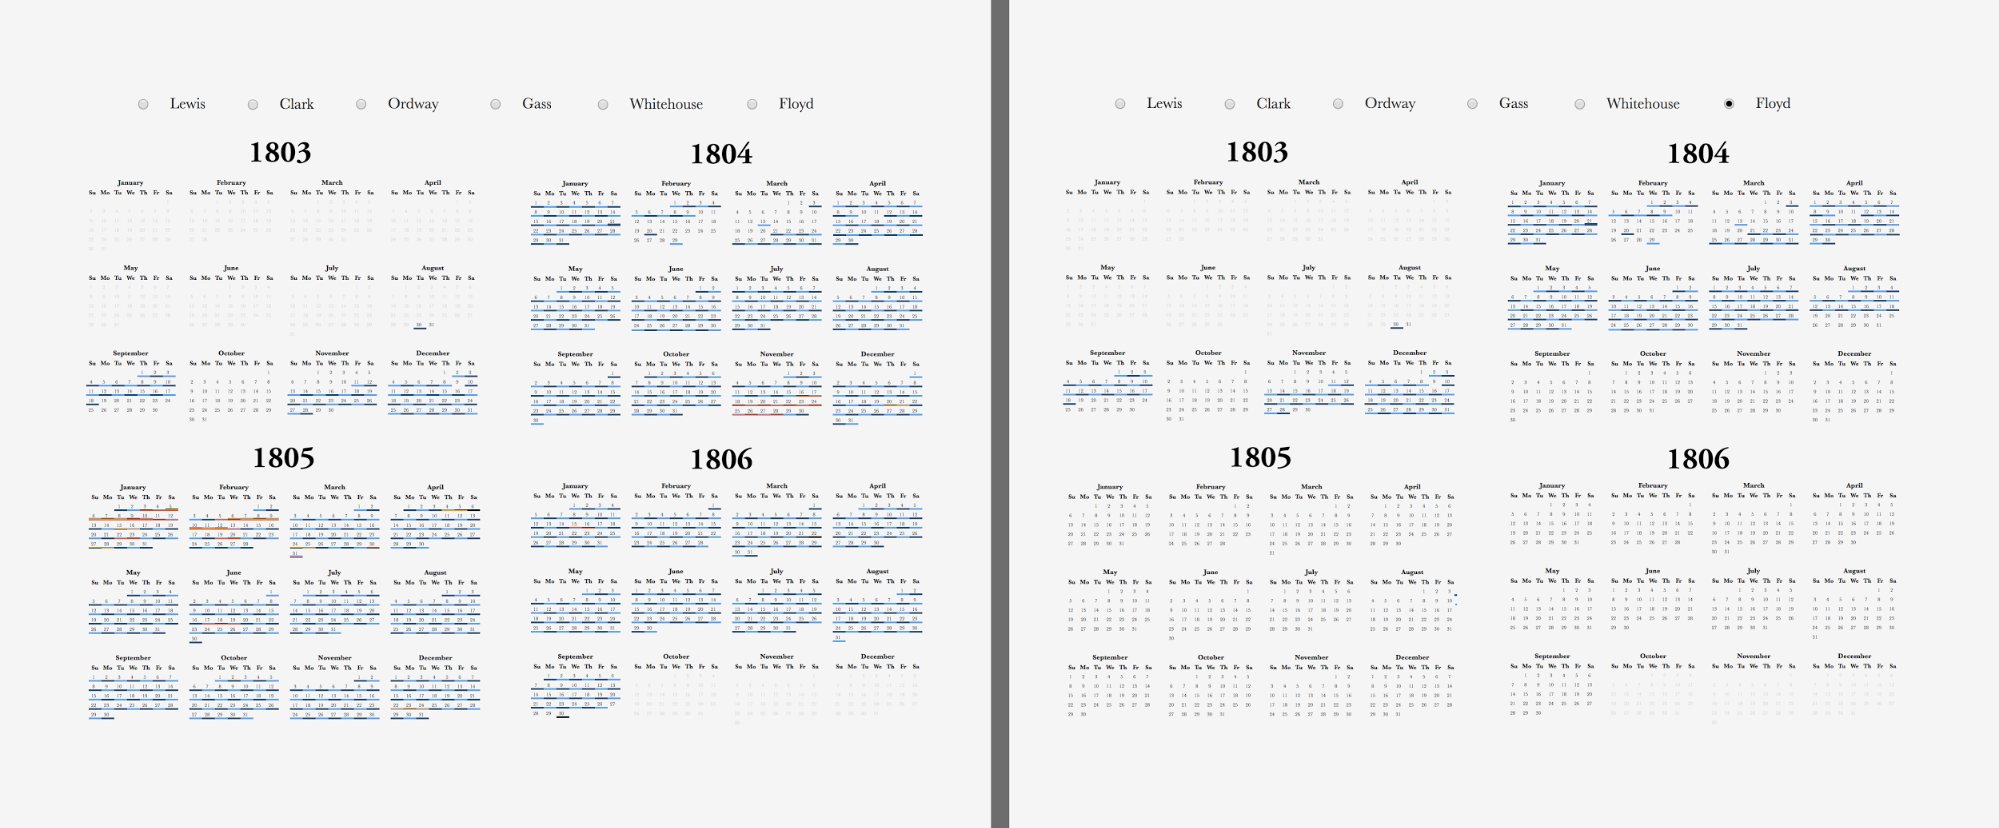 Mockup of calendar depicting the difference between all authors and only Floyd (his entries stop in August of 1804)